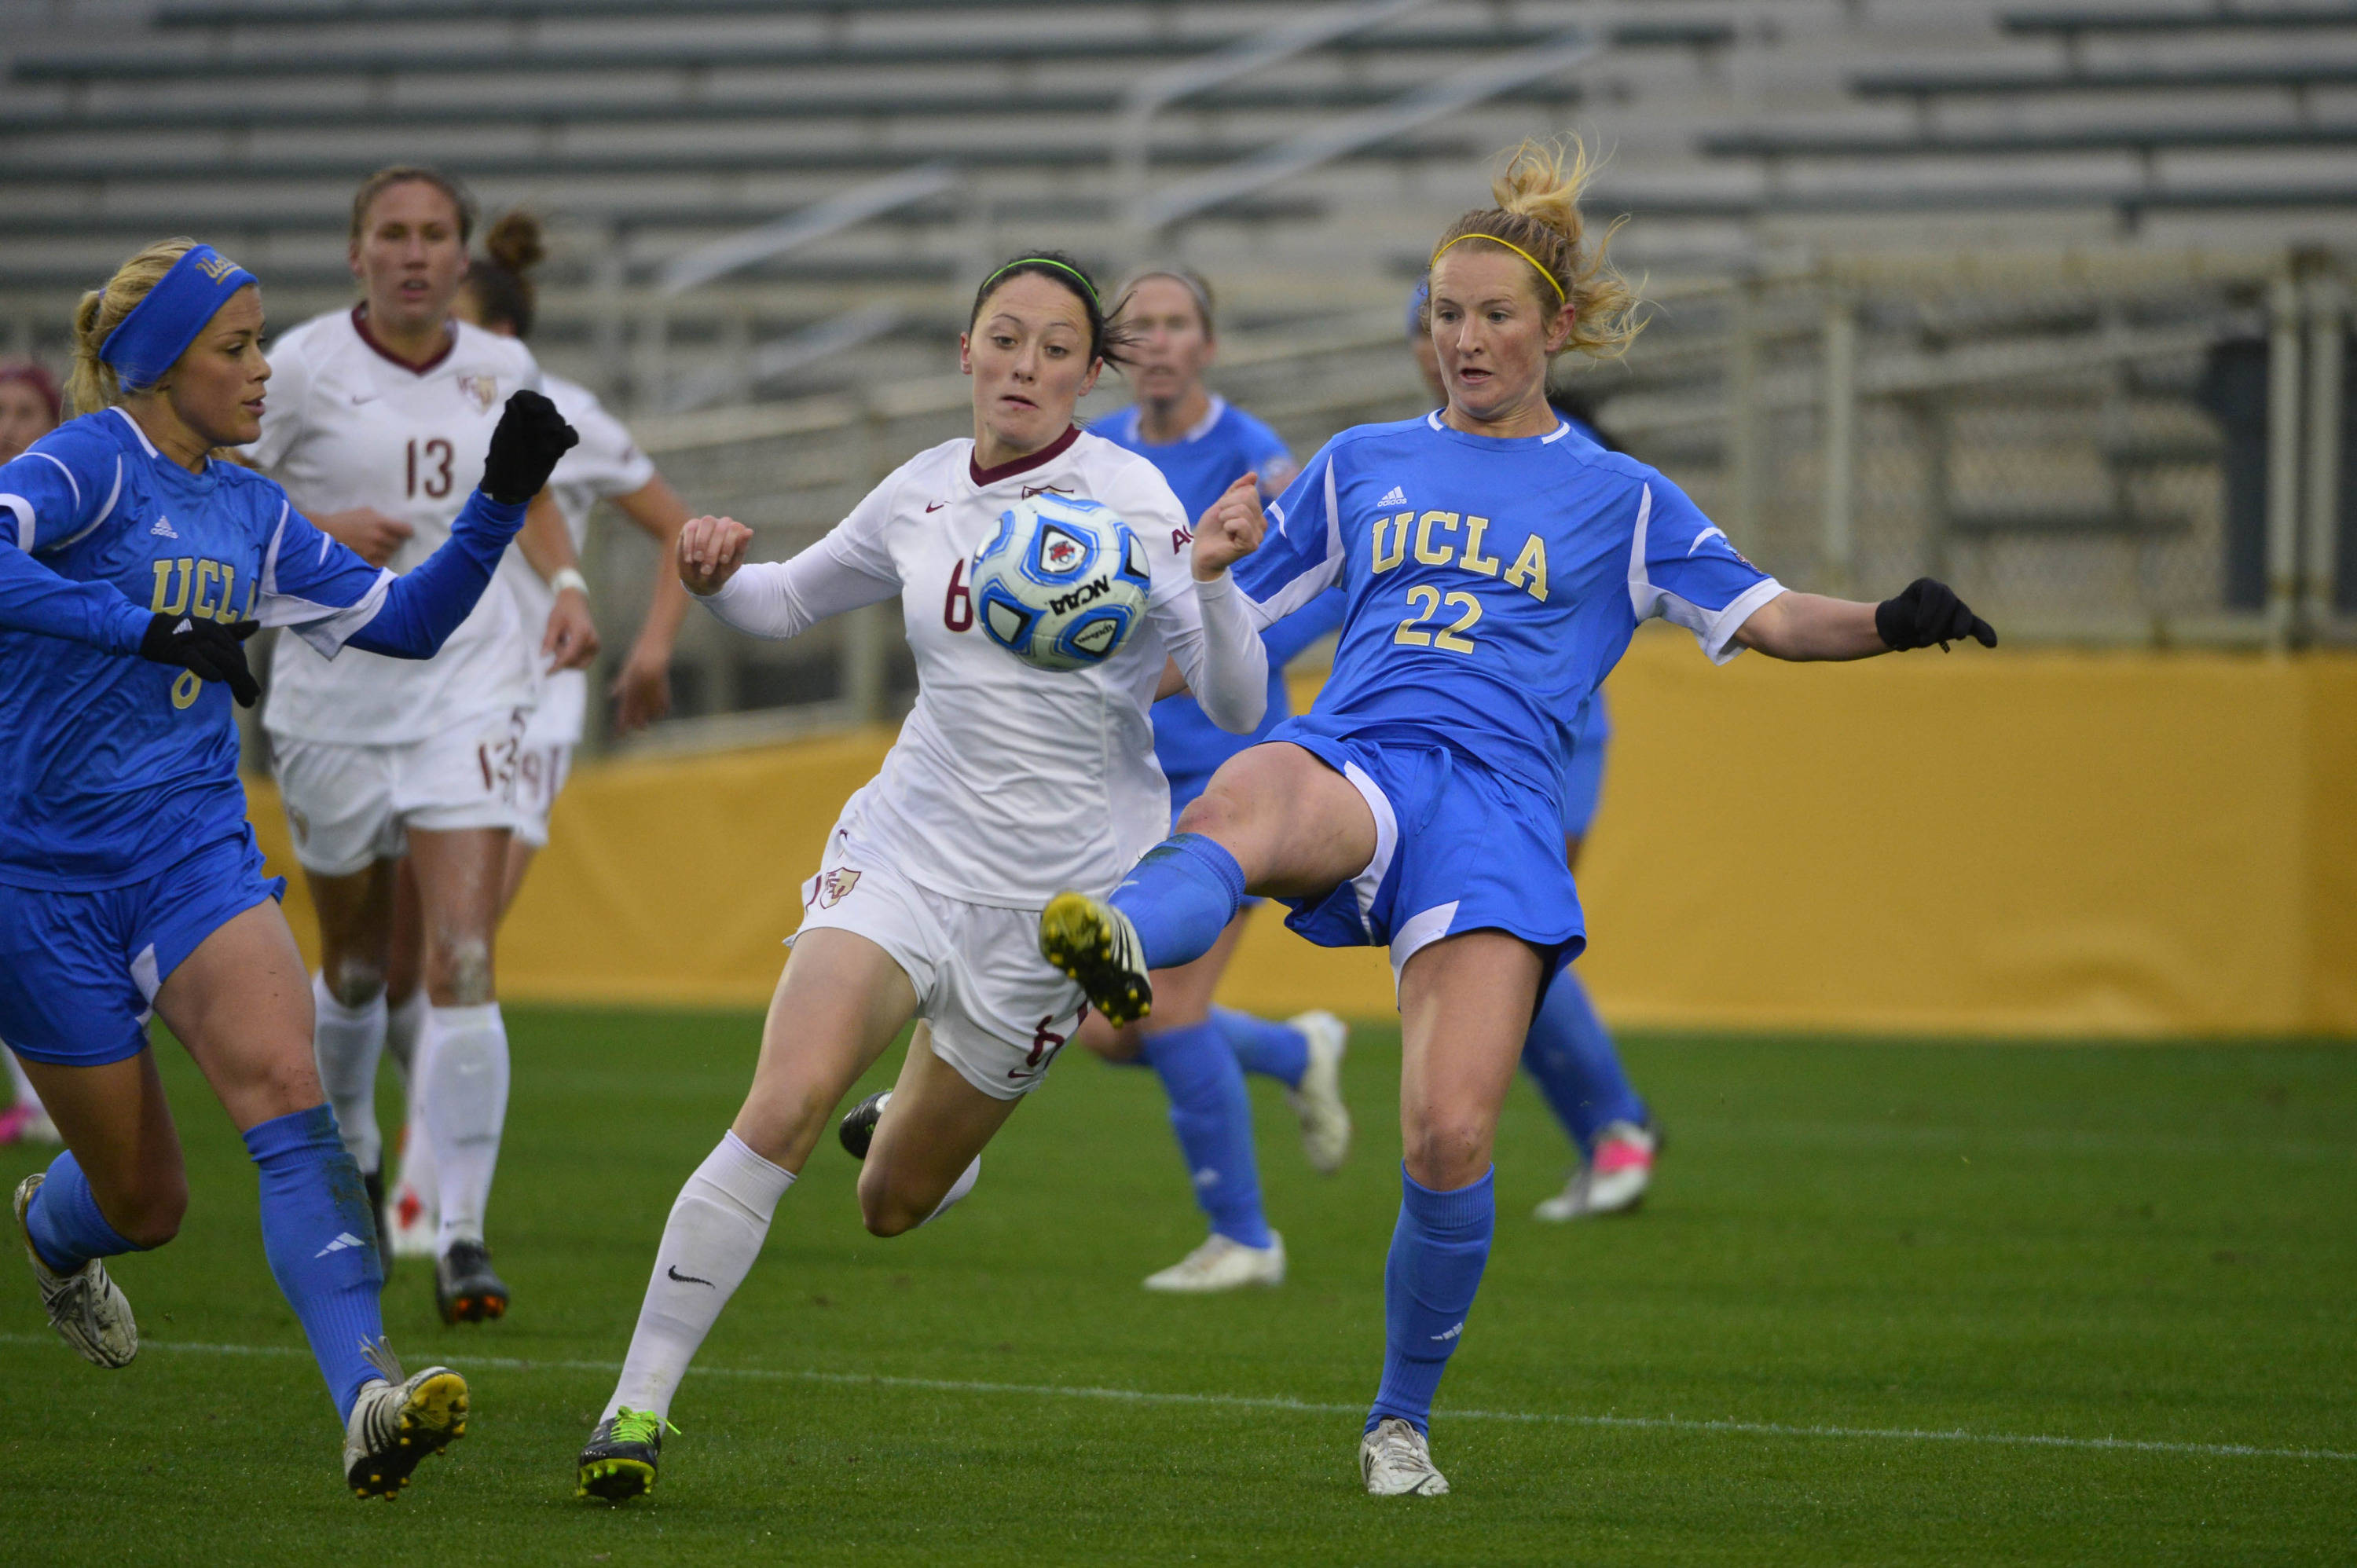 Florida State Seminoles defender Megan Campbell (6) and UCLA Bruins midfield/forward Sam Mewis (22) fight for the ball. Mandatory Credit: Bob Donnan-USA TODAY Sports